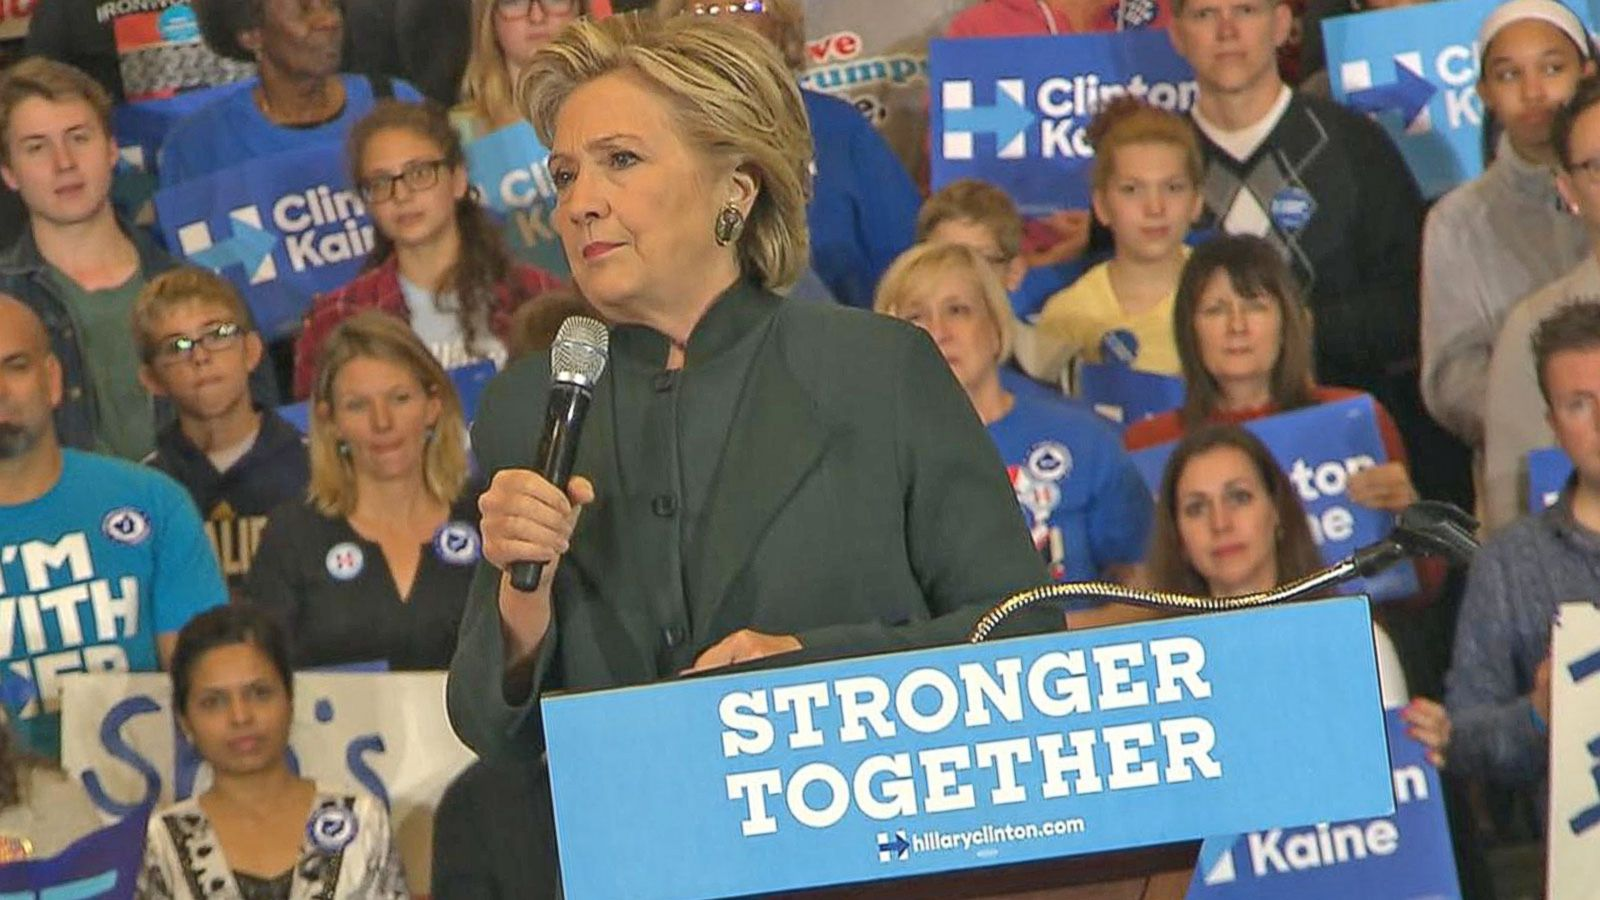 VIDEO: Hillary Clinton Victory Could Help Down-Ballot Democrats